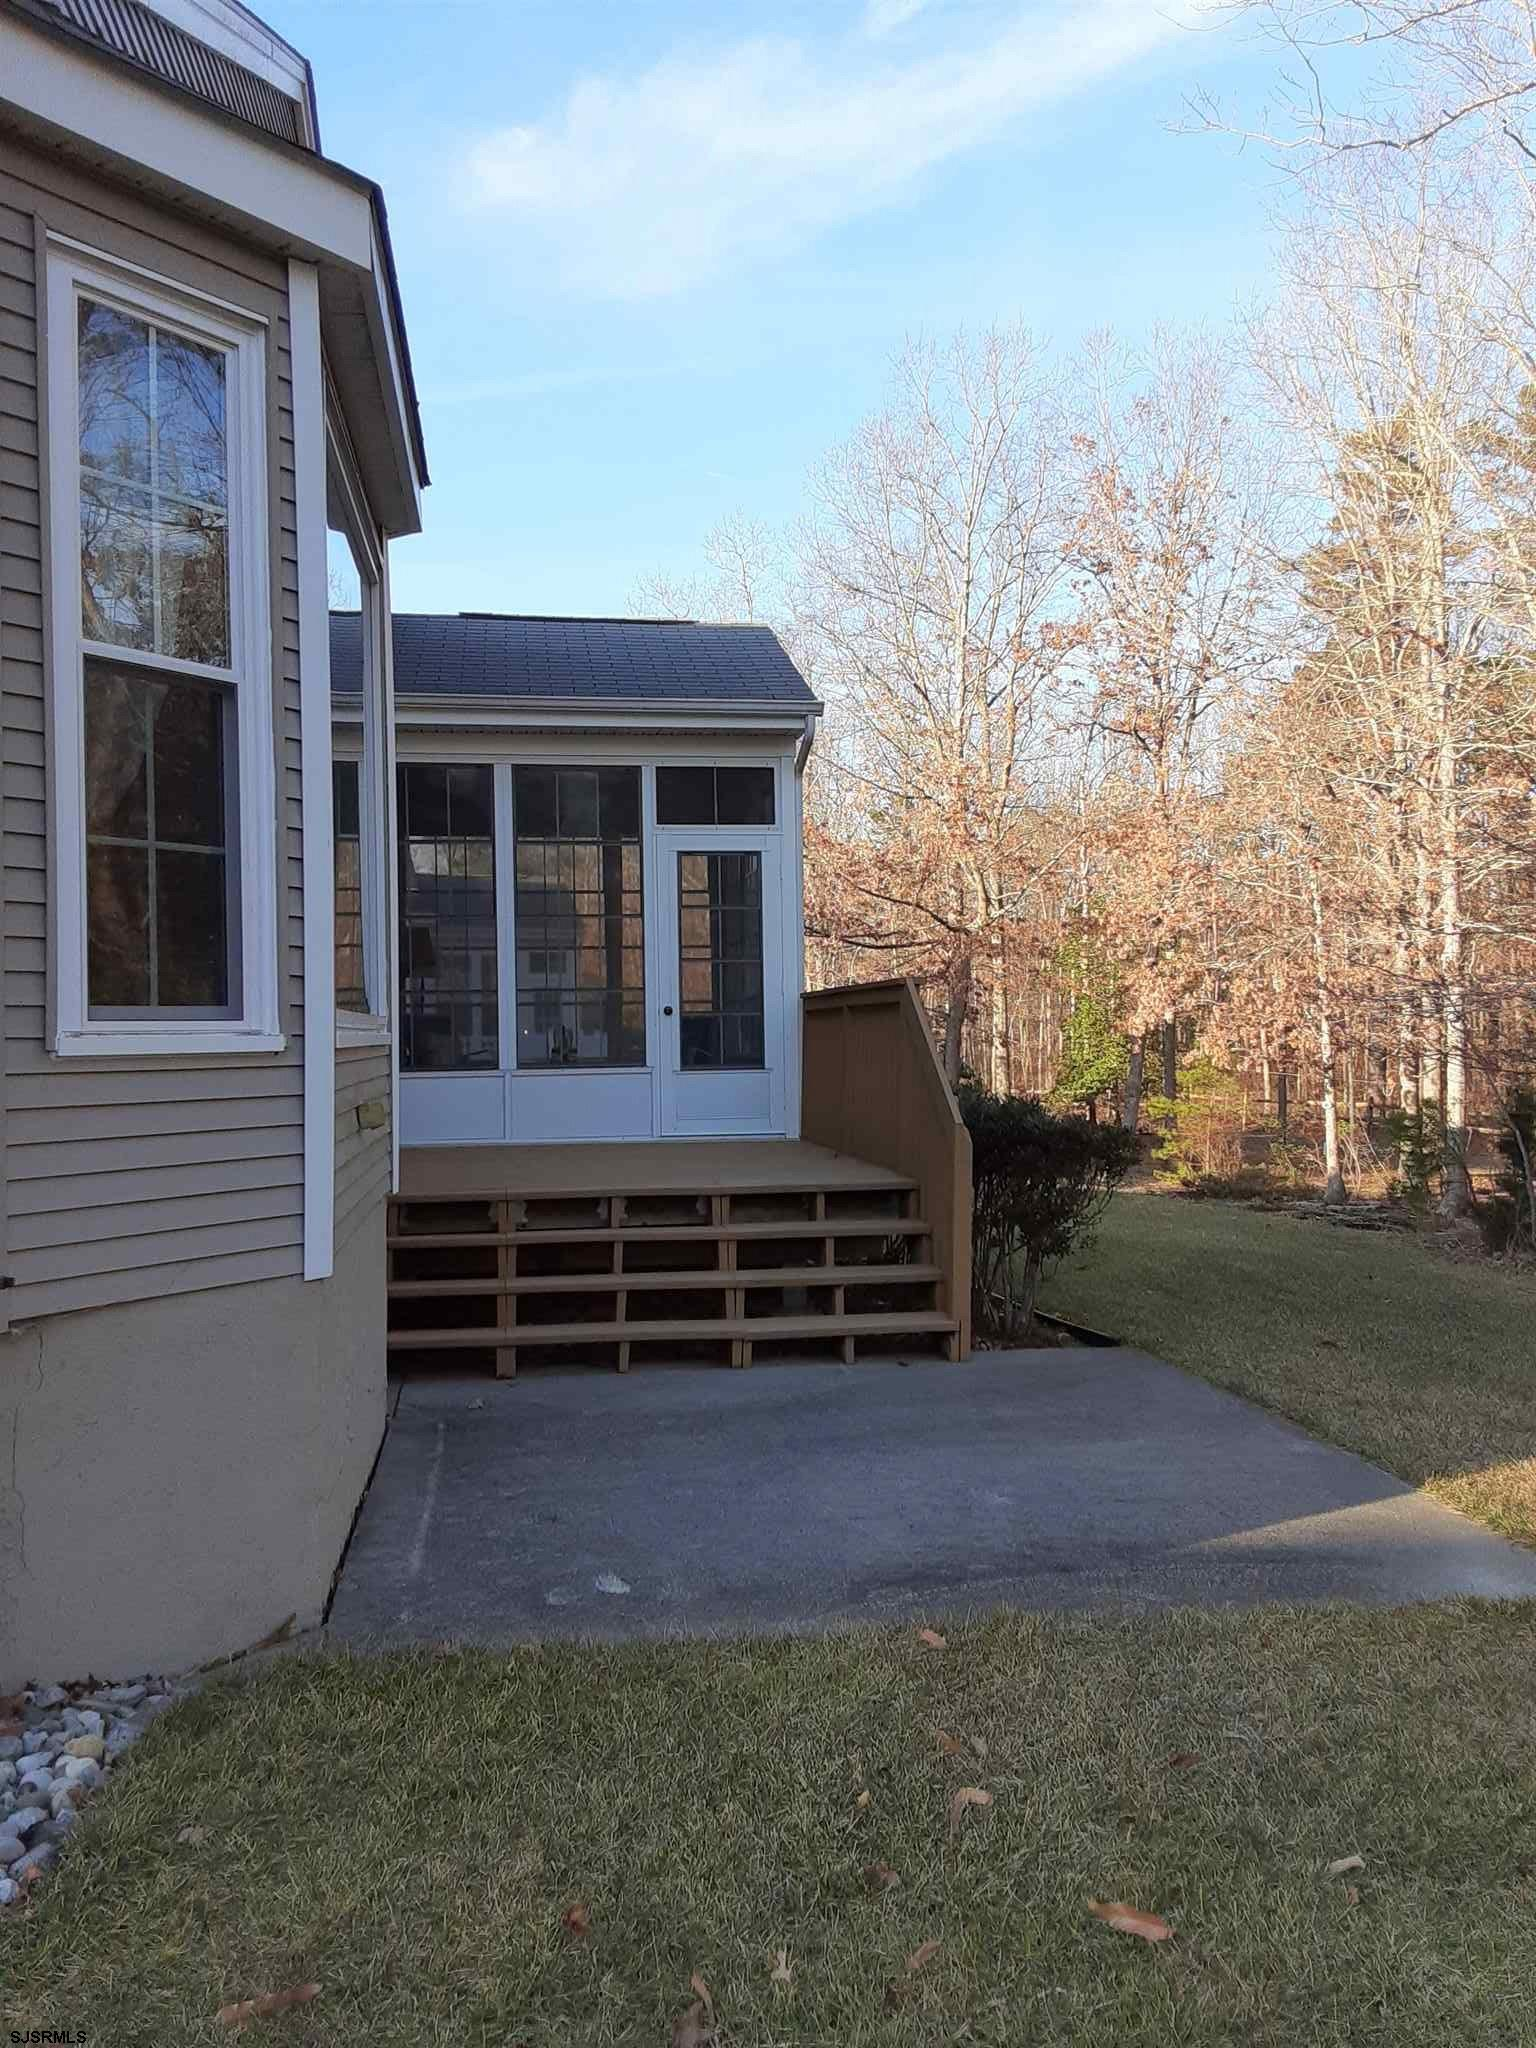 51 DERBY Dr - Picture 4